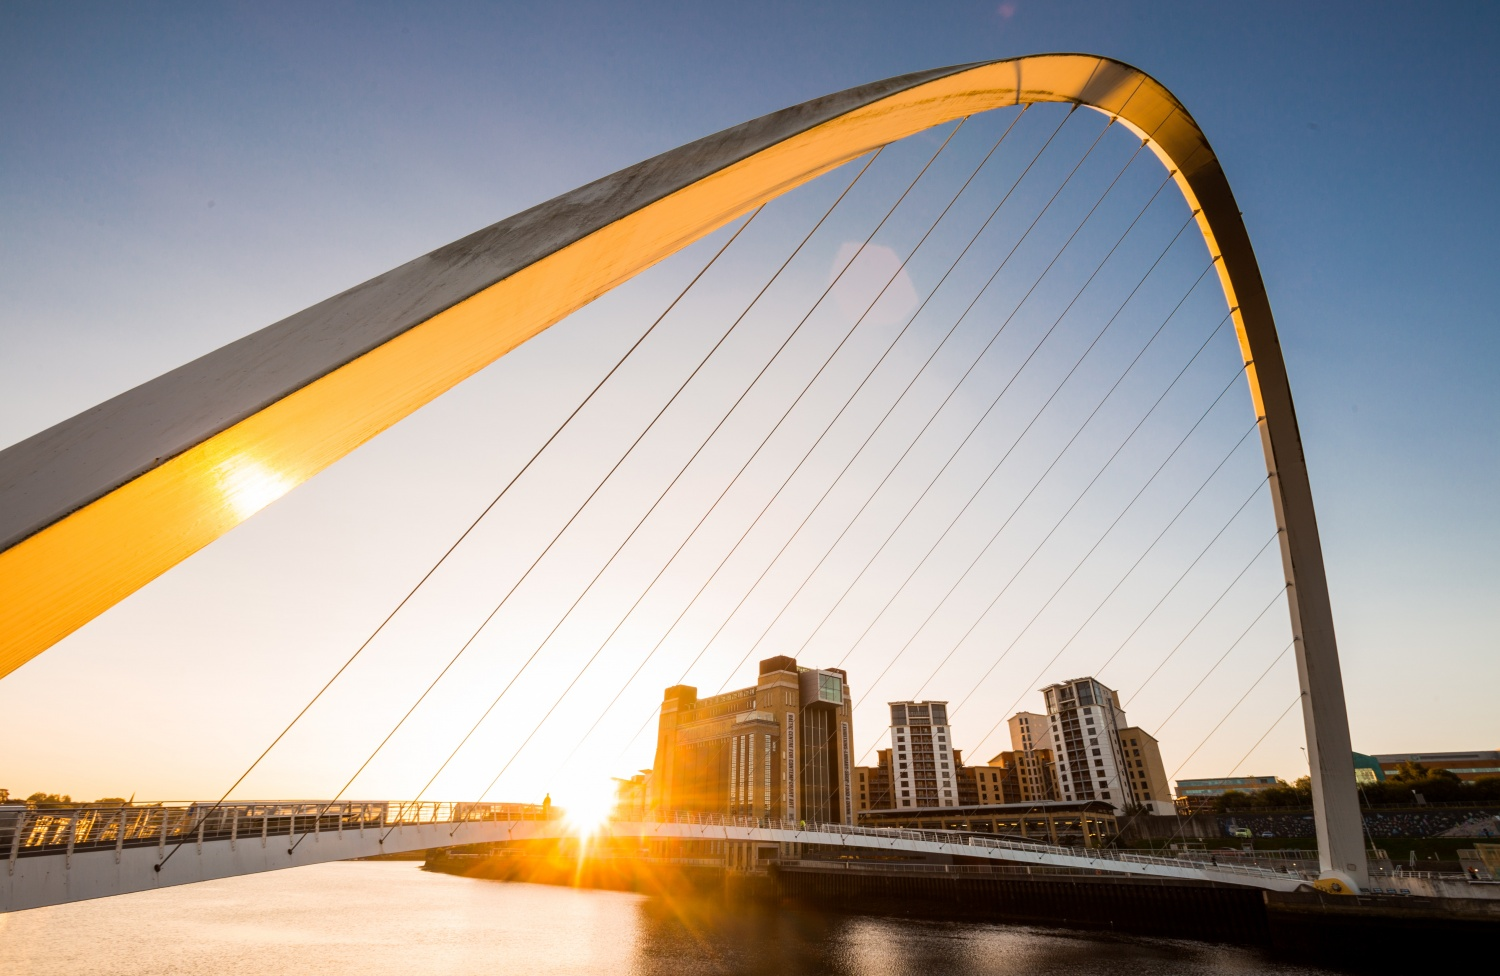 Incontri online a Newcastle upon Tyne